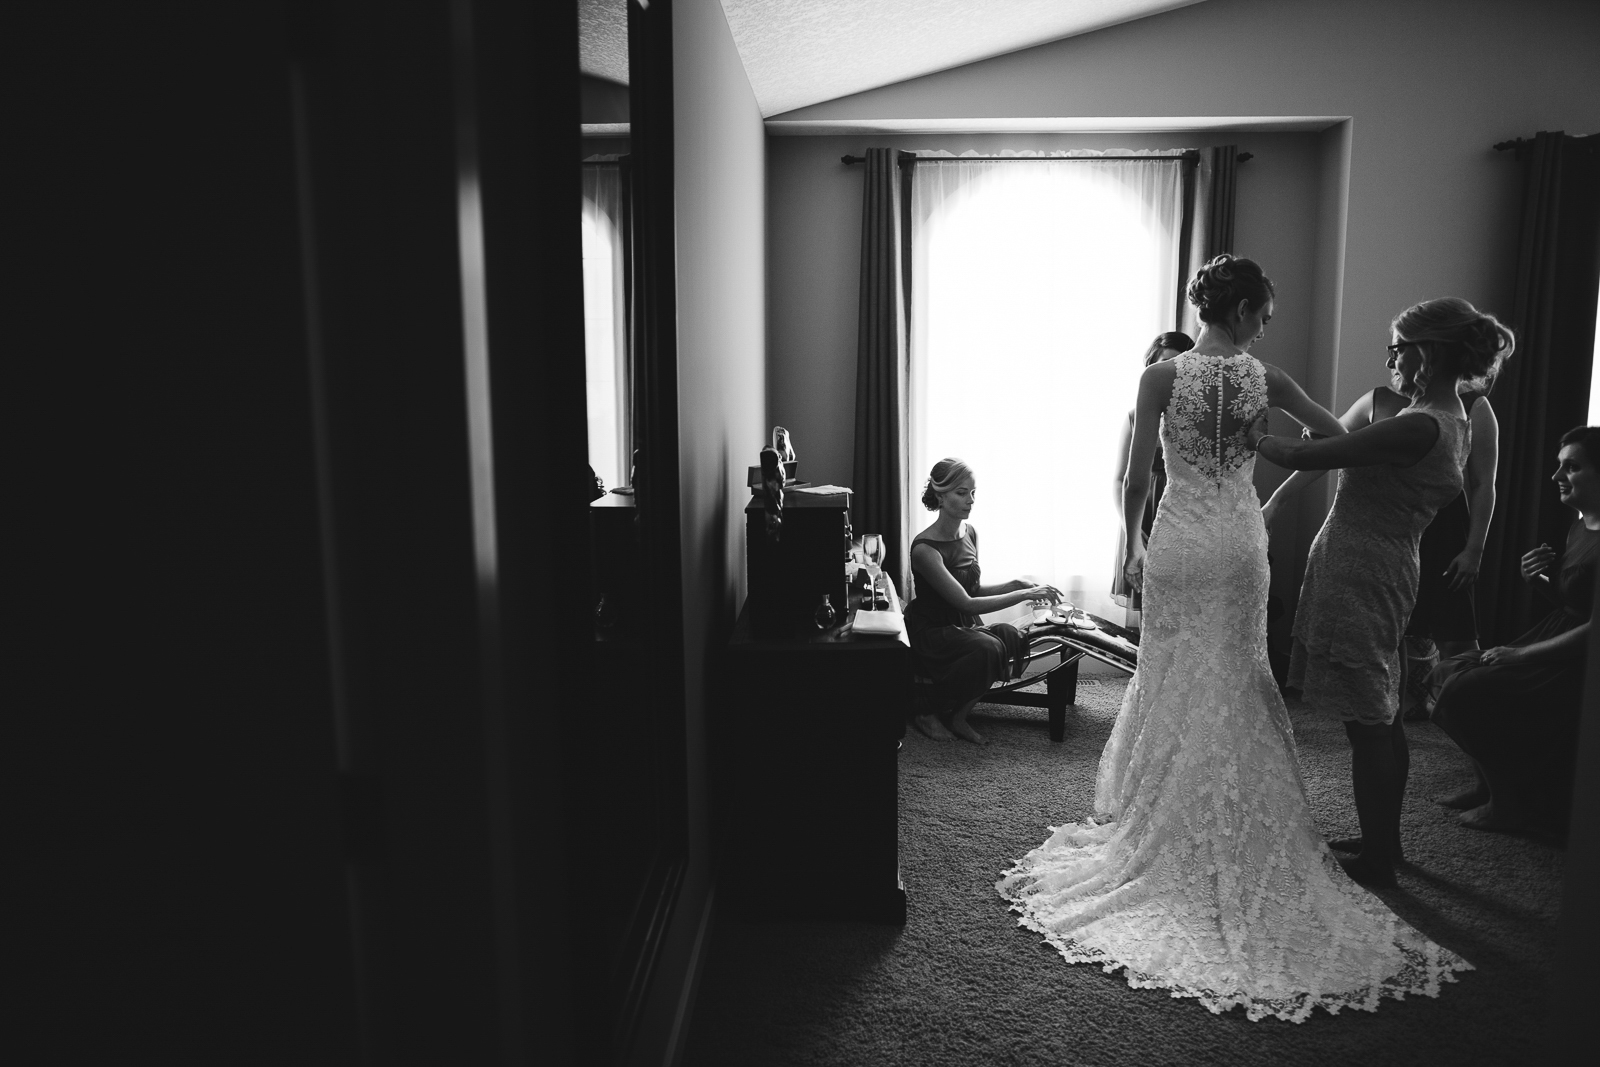 68-36Andrew_Pavlidis_Photography_Kasia_and_Michael_Calgary_Wedding_Blog-0644_Calgary_Wedding_Photographer